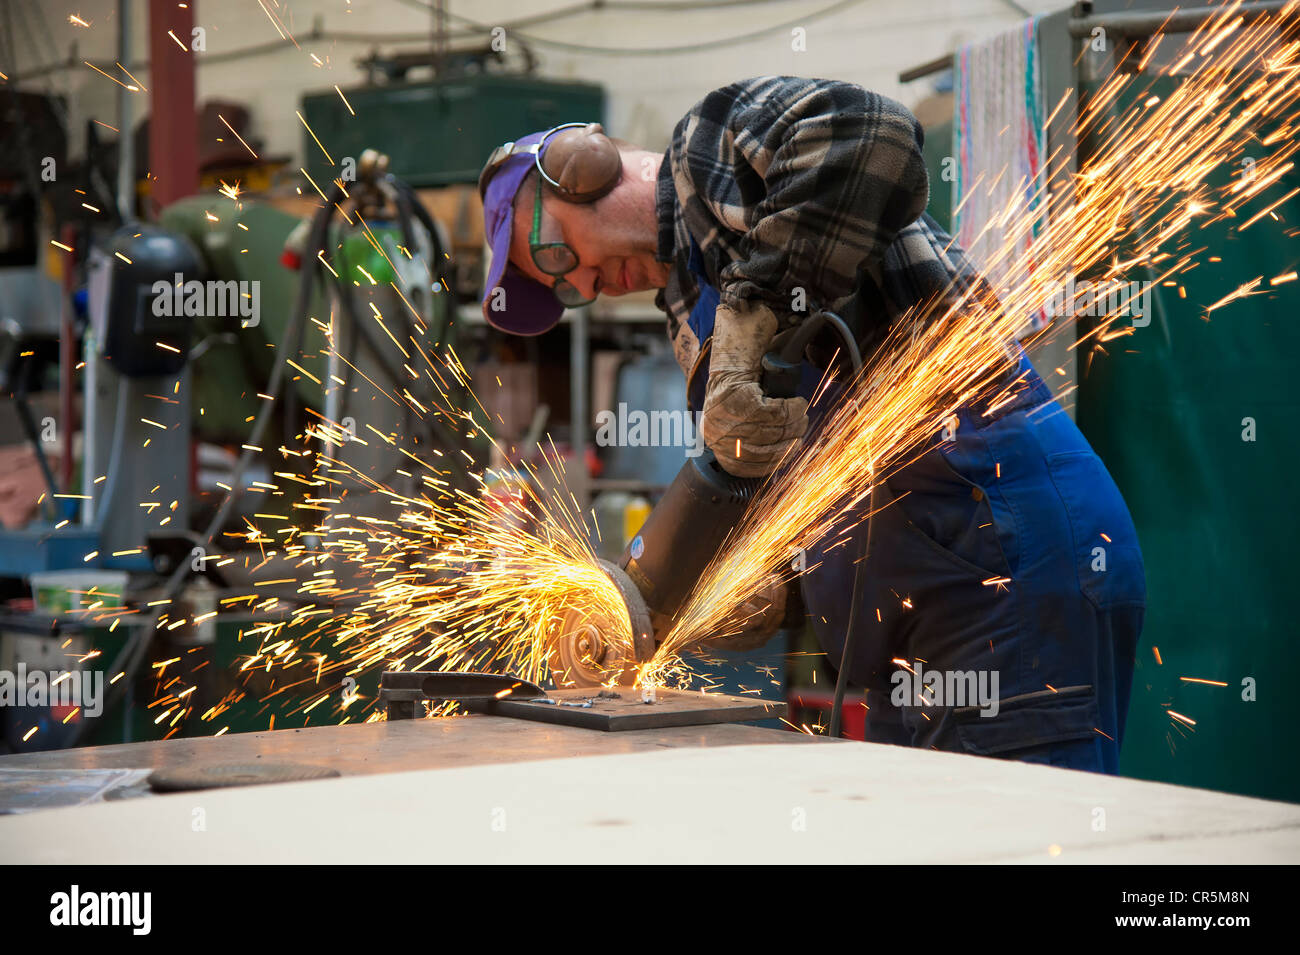 Craftsmen working with an angle grinder in his workshop - Stock Image